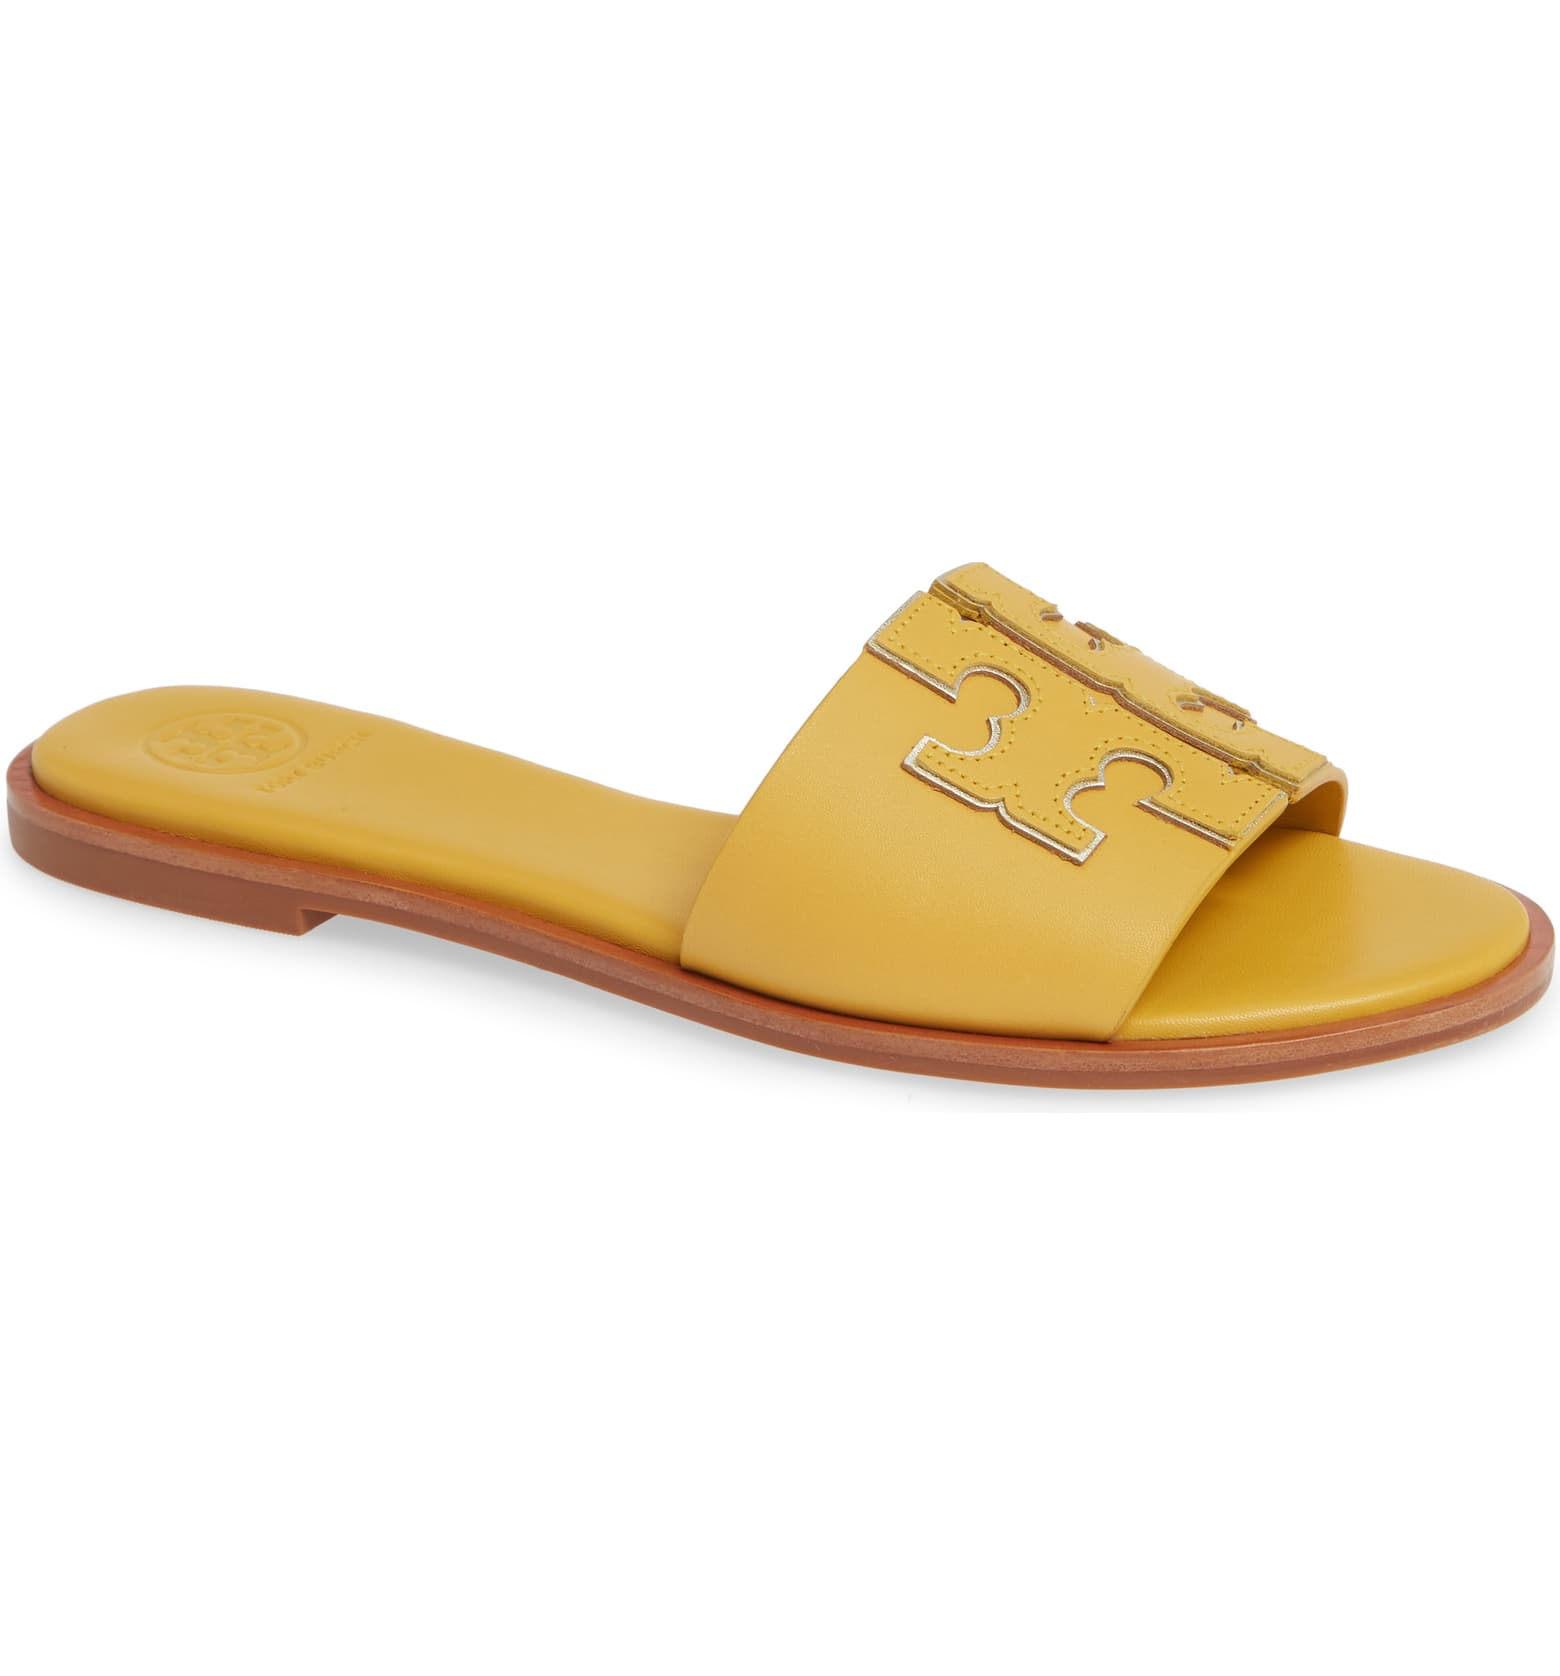 TORY BURCH   This great option by Tory Burch comes in a variety of colors at $228. It also comes in a versatile yellow, shown here, red and multi raffia version on sale for $152.76 at Nordstrom.